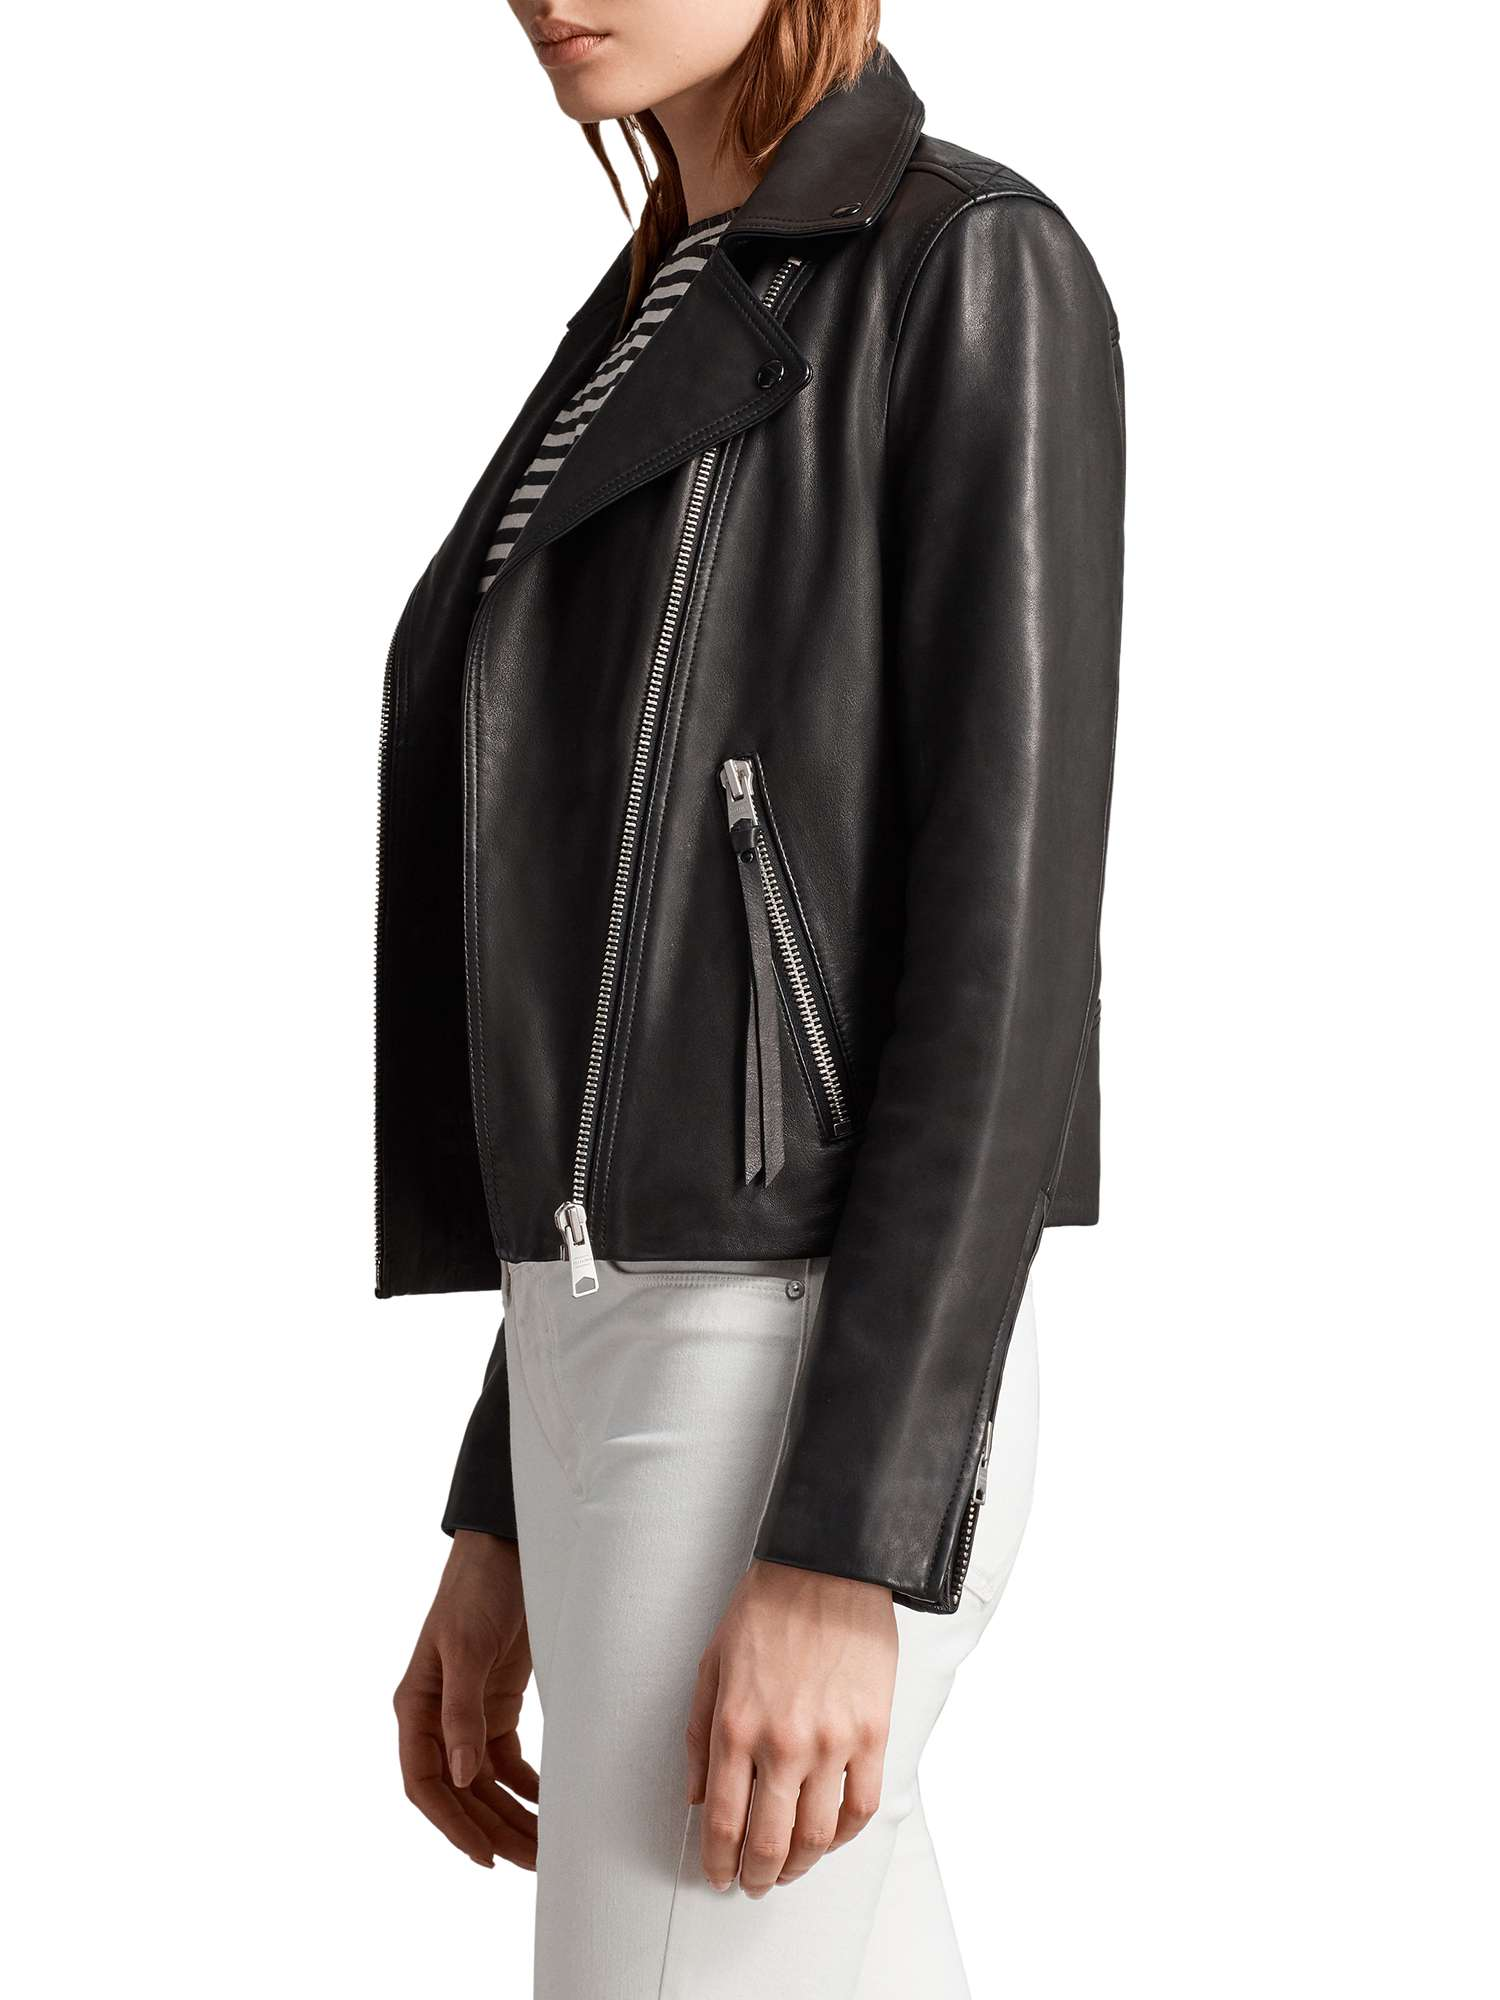 Biker Leather AllSaints Dalby Dalby Leather Jacket AllSaints Biker nYX7qBcXw